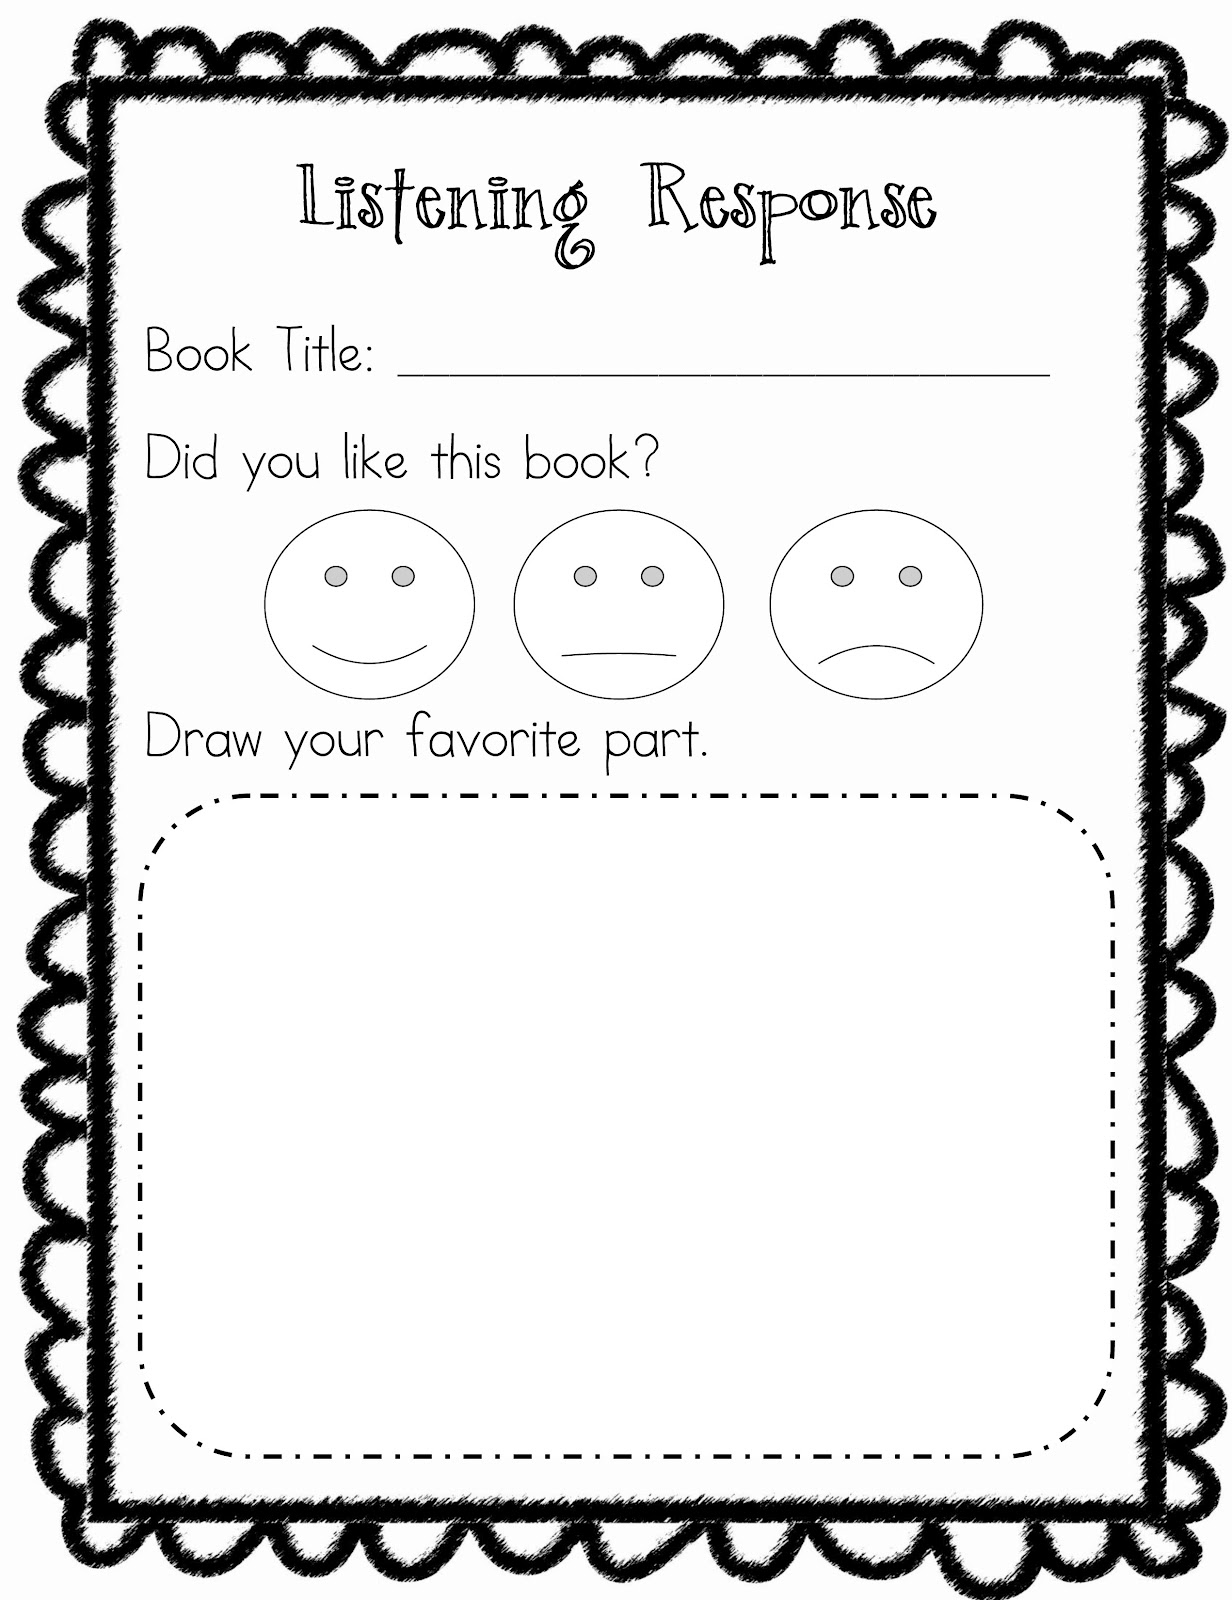 ... Franklin: Daily 5 Listening to Reading Response sheets Images - Frompo